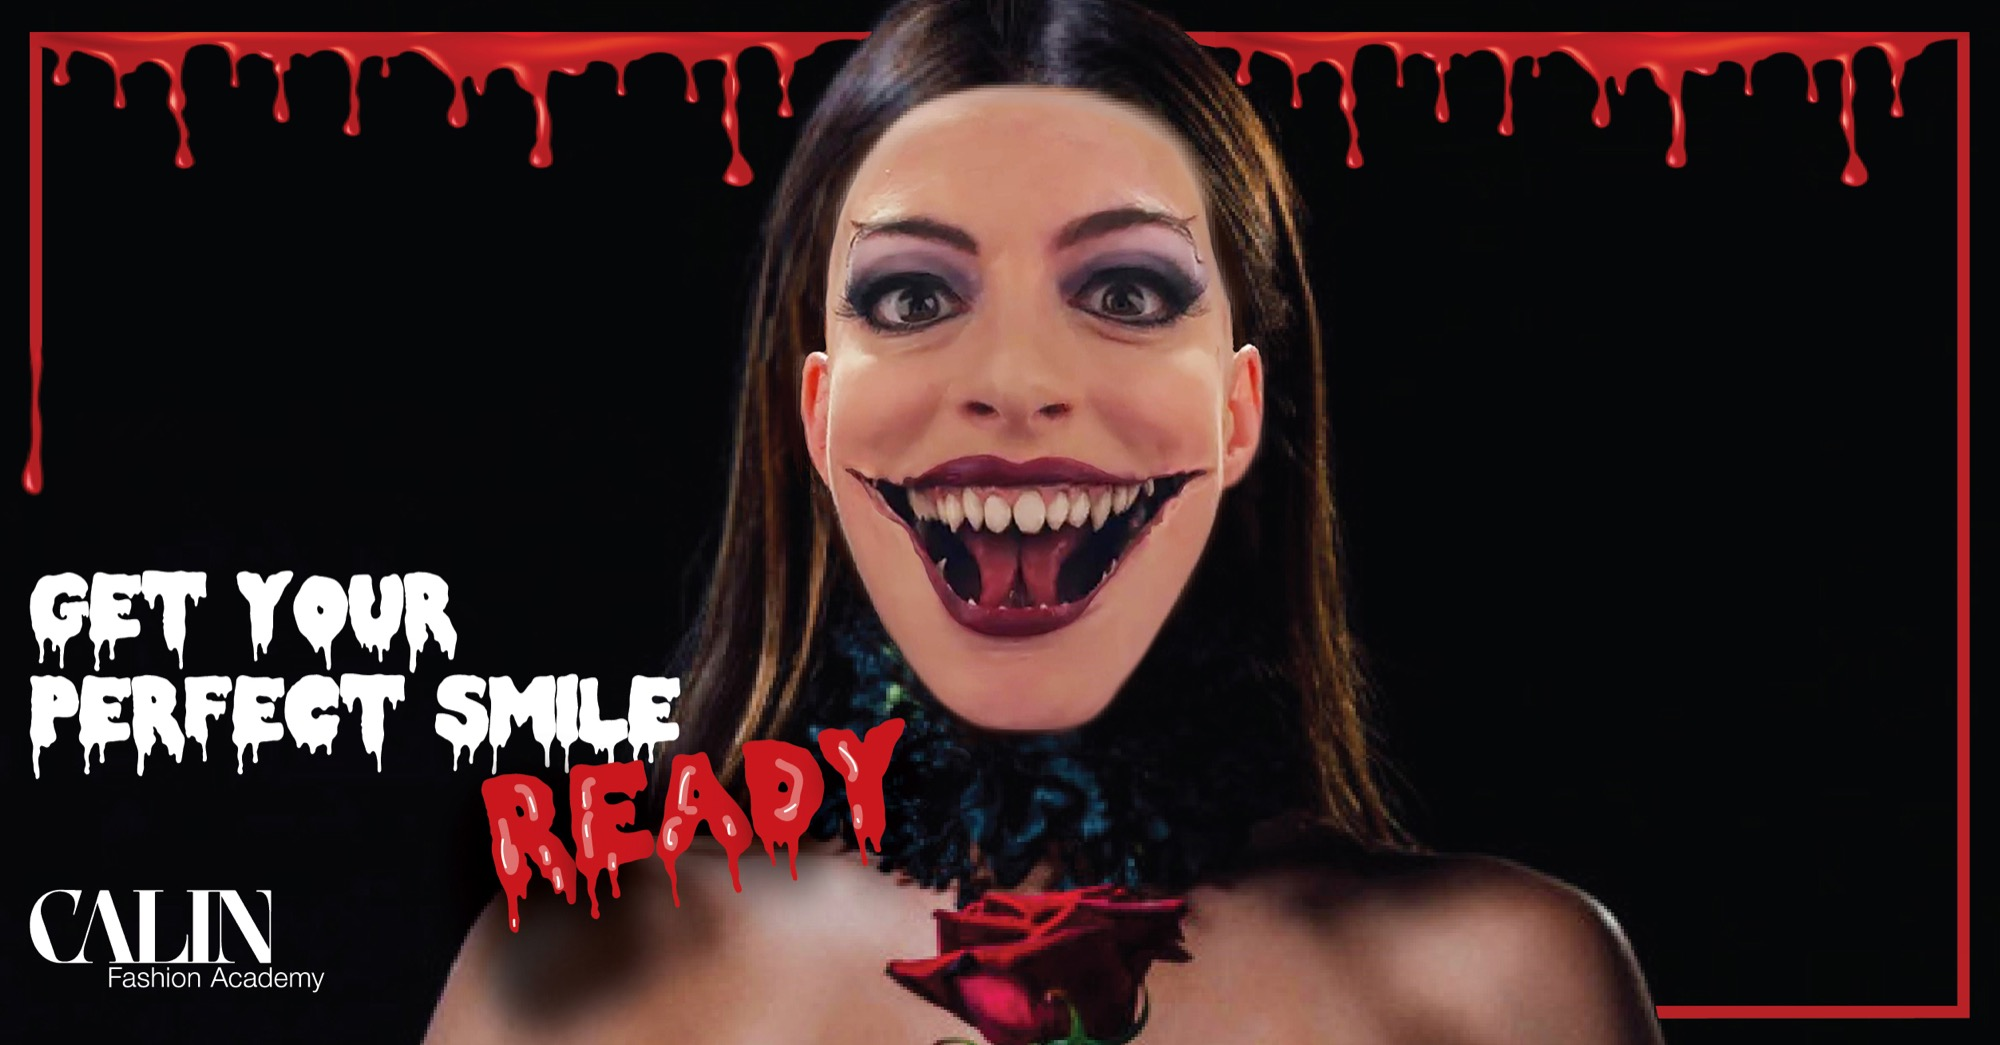 Get your perfect smile ready